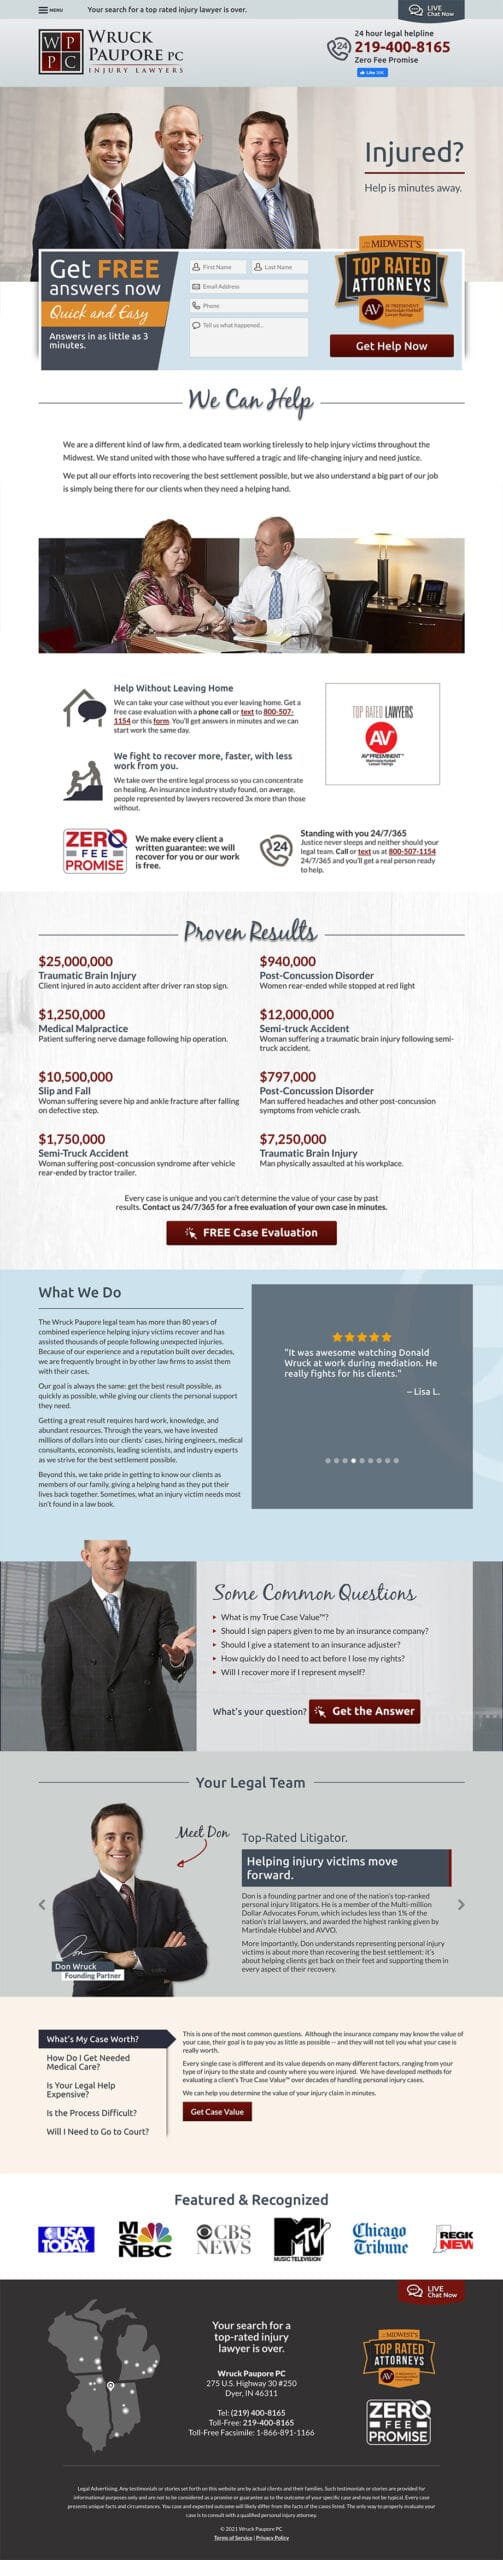 Law Firm Website Design for Wruck Paupore PC